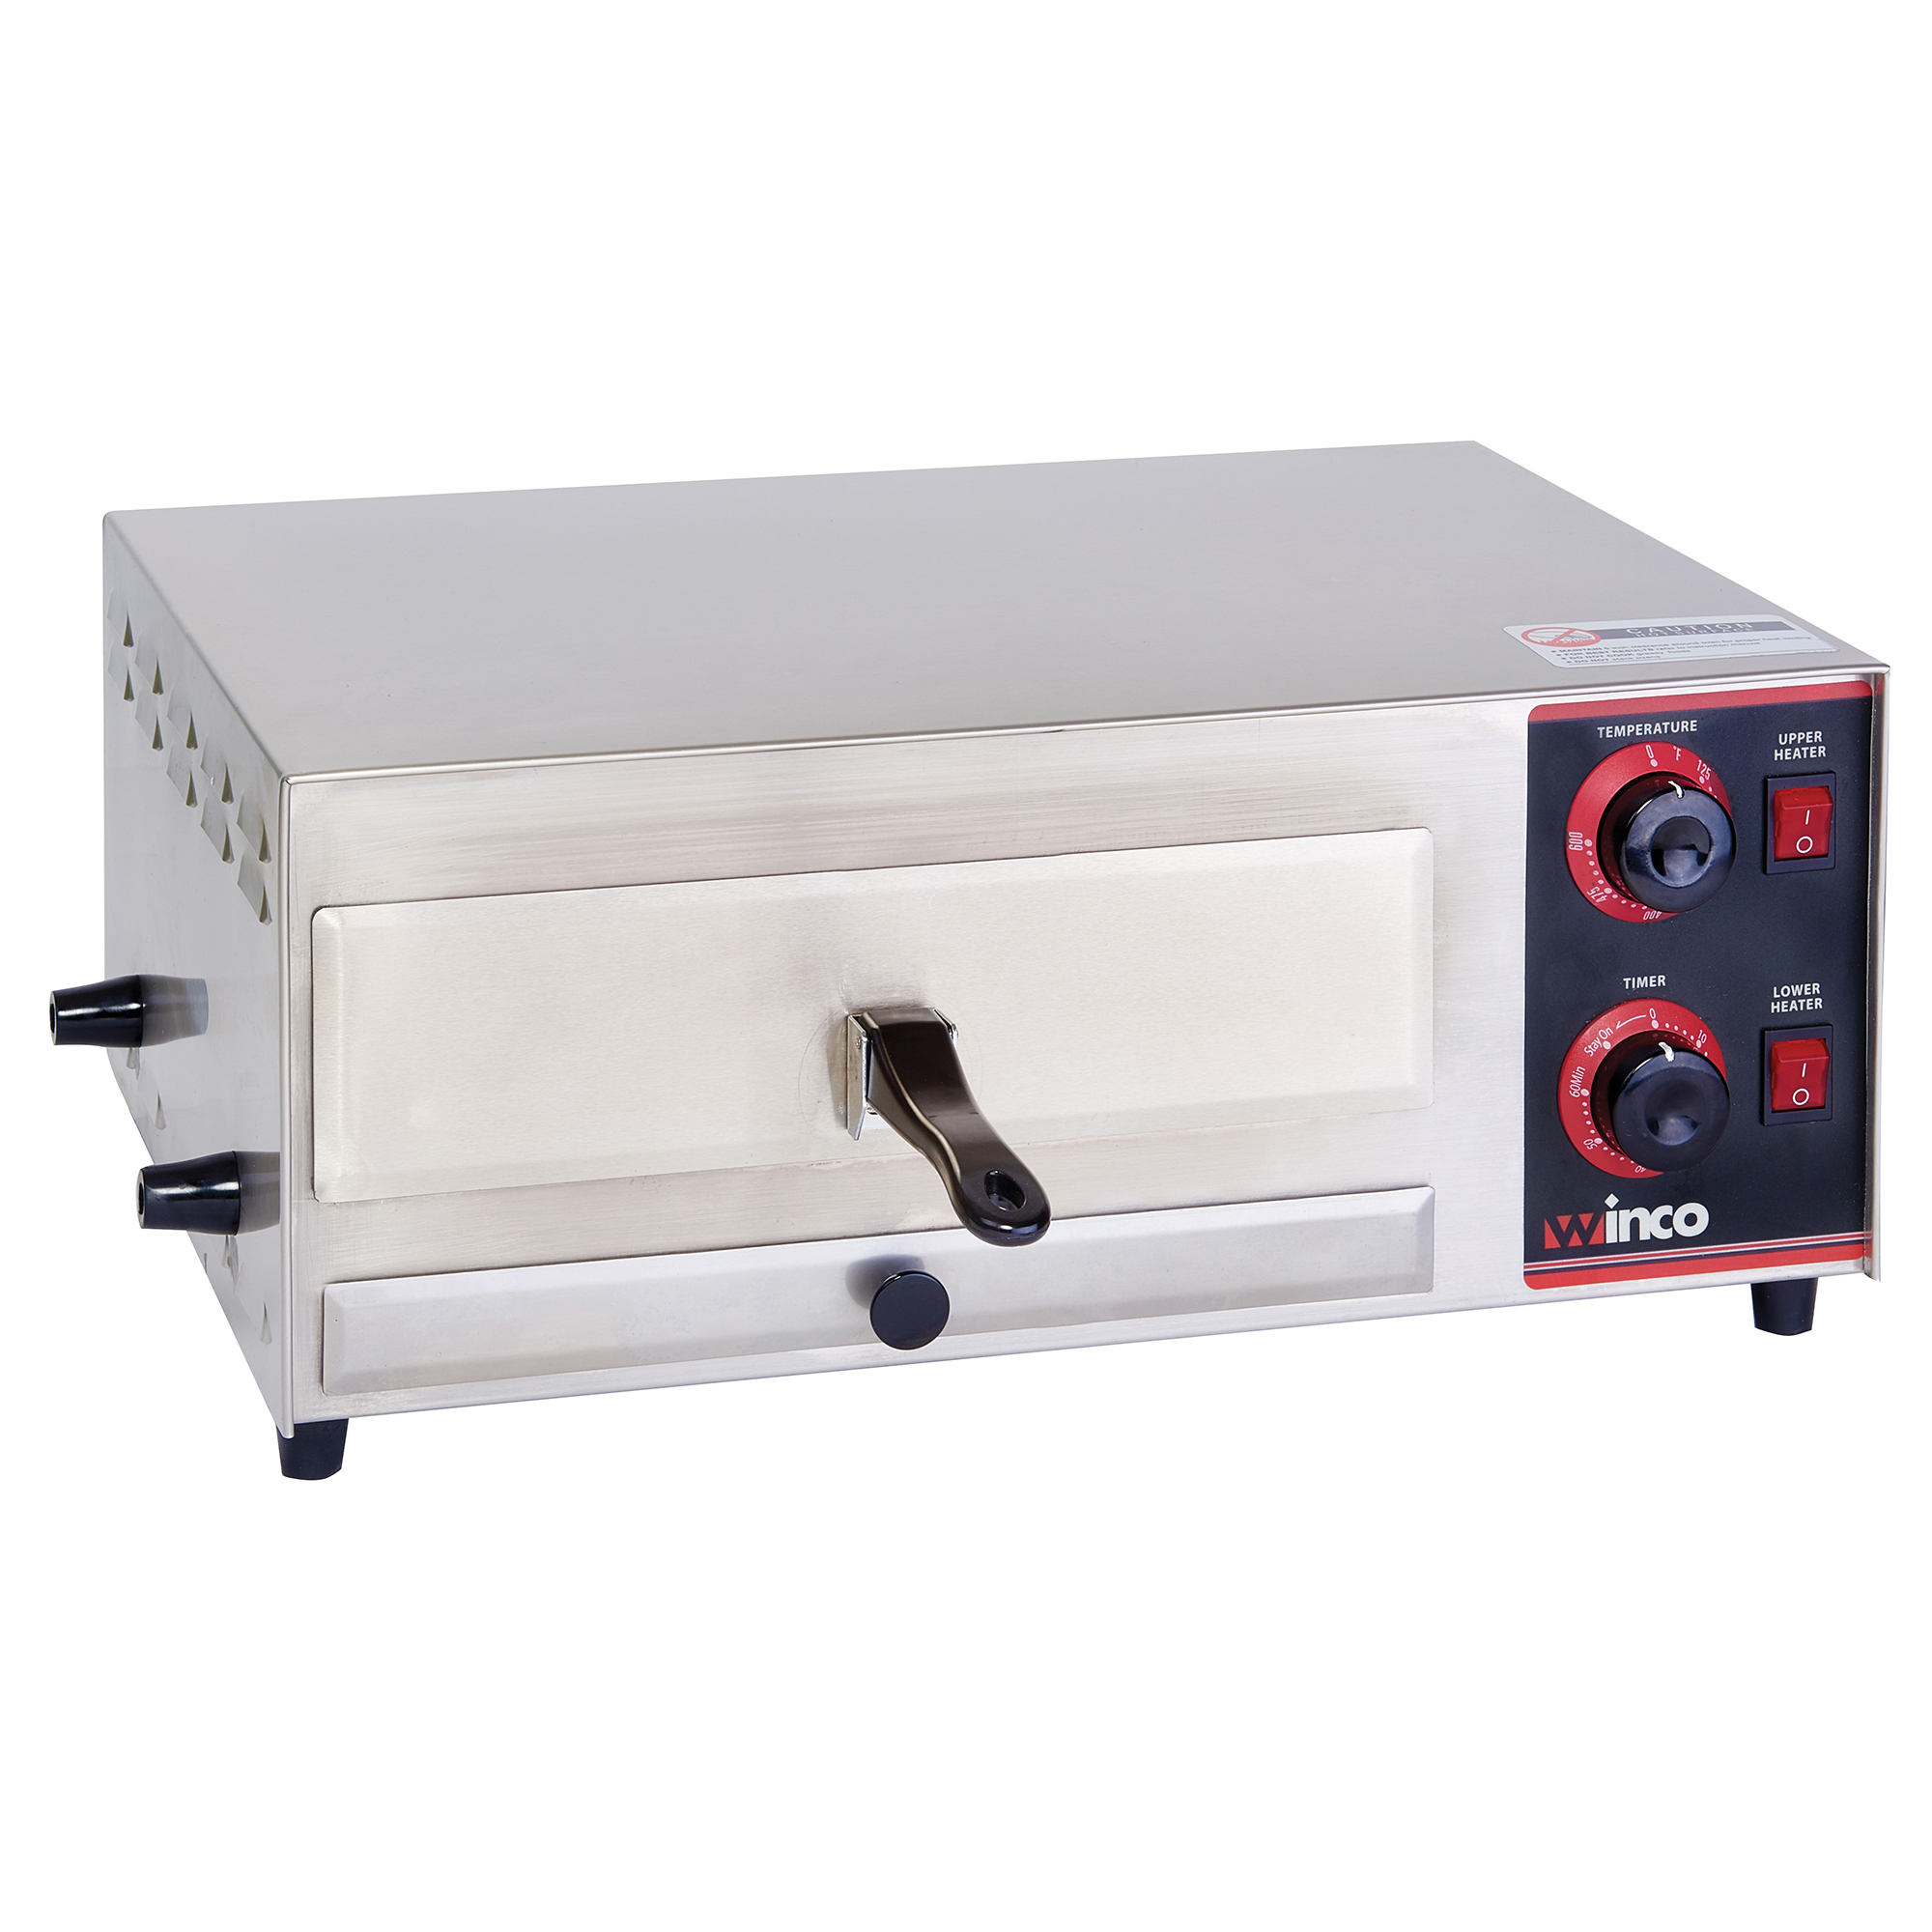 Winco EPO-1 pizza bake oven, countertop, electric